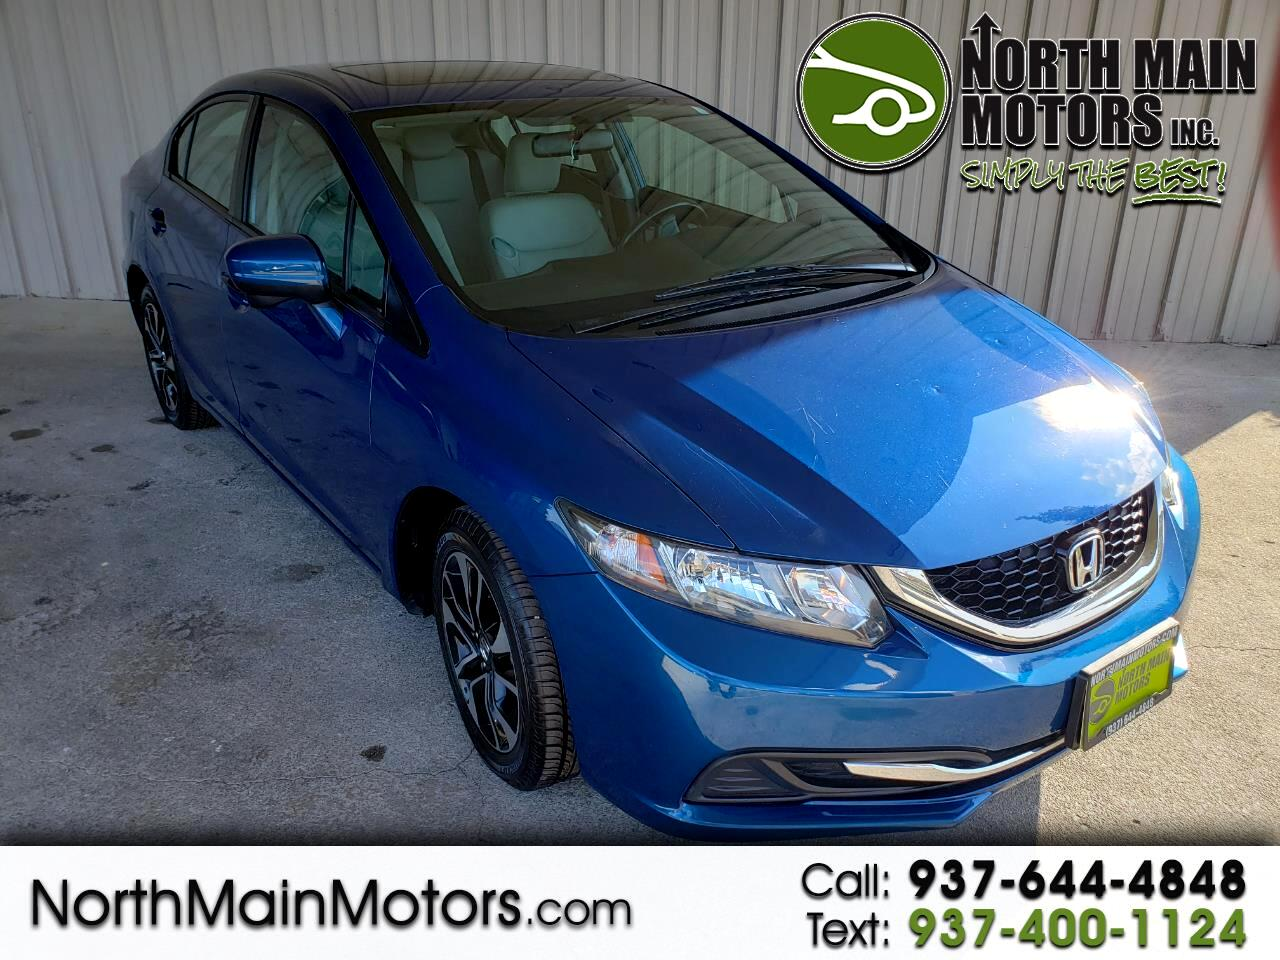 Honda Civic Sedan 4dr CVT EX 2015